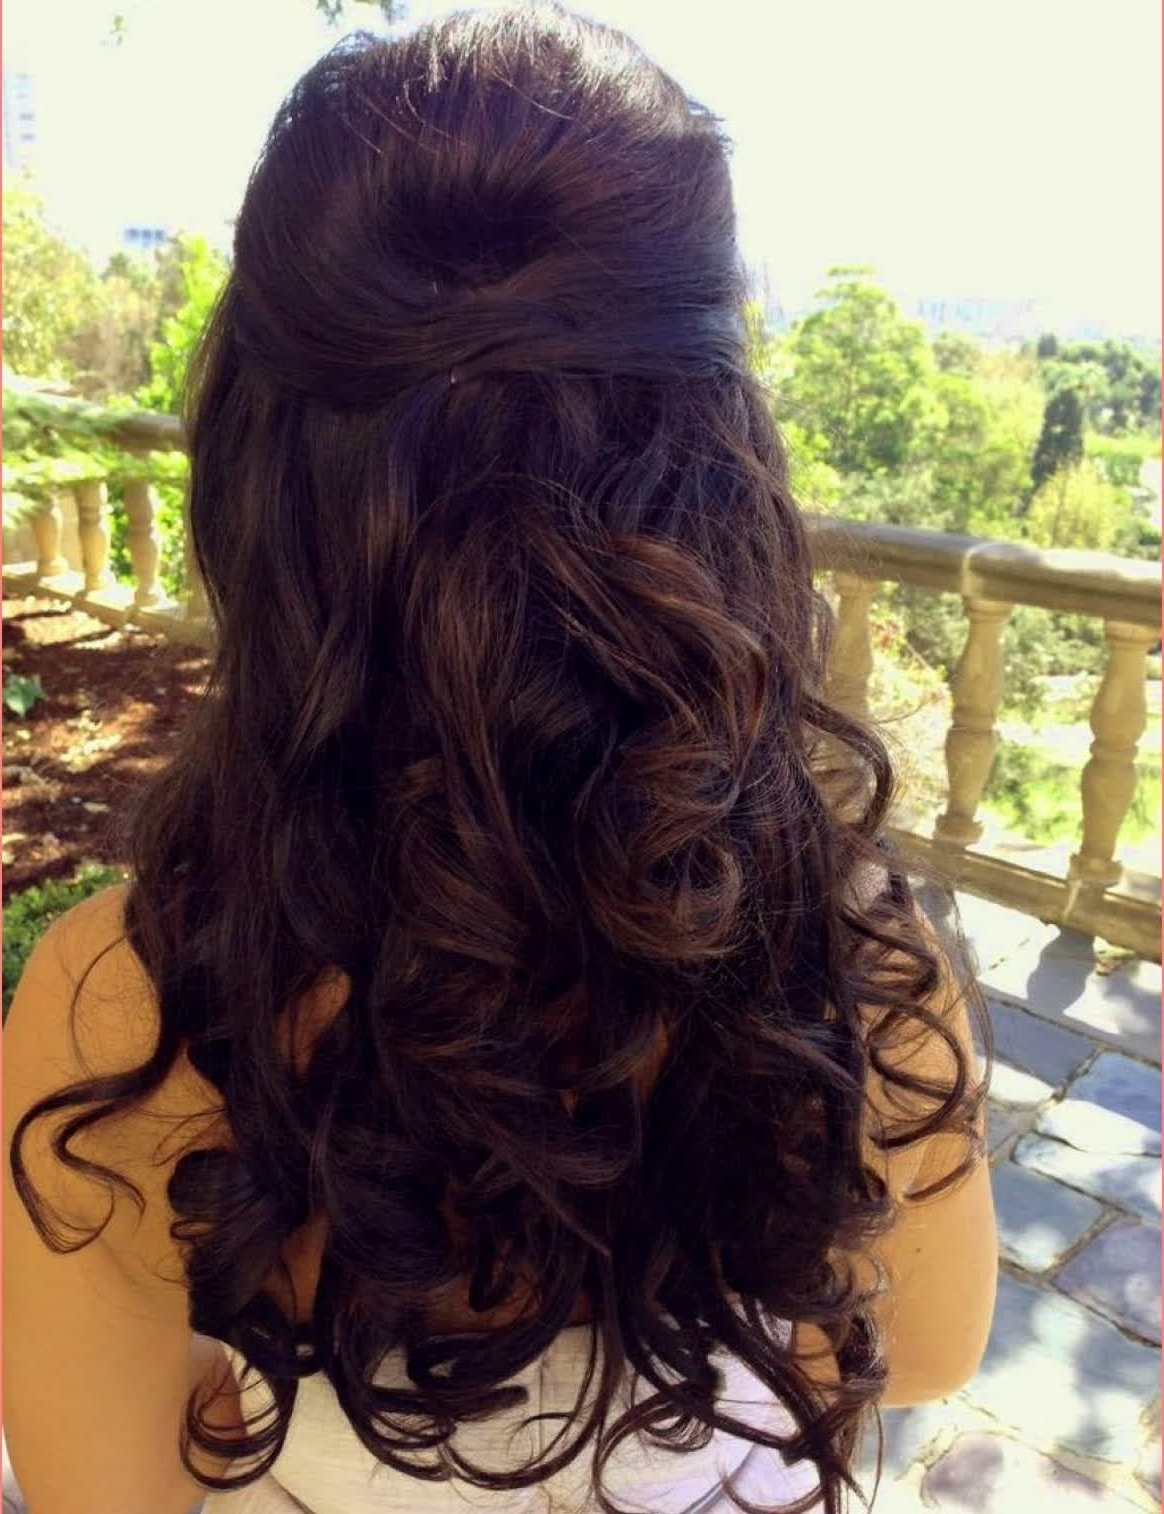 Best Half Up Half Down Wedding Hairstyles Curls – Best Hairstyles With 2018 Half Up Half Down Wedding Hairstyles For Long Hair (View 3 of 15)